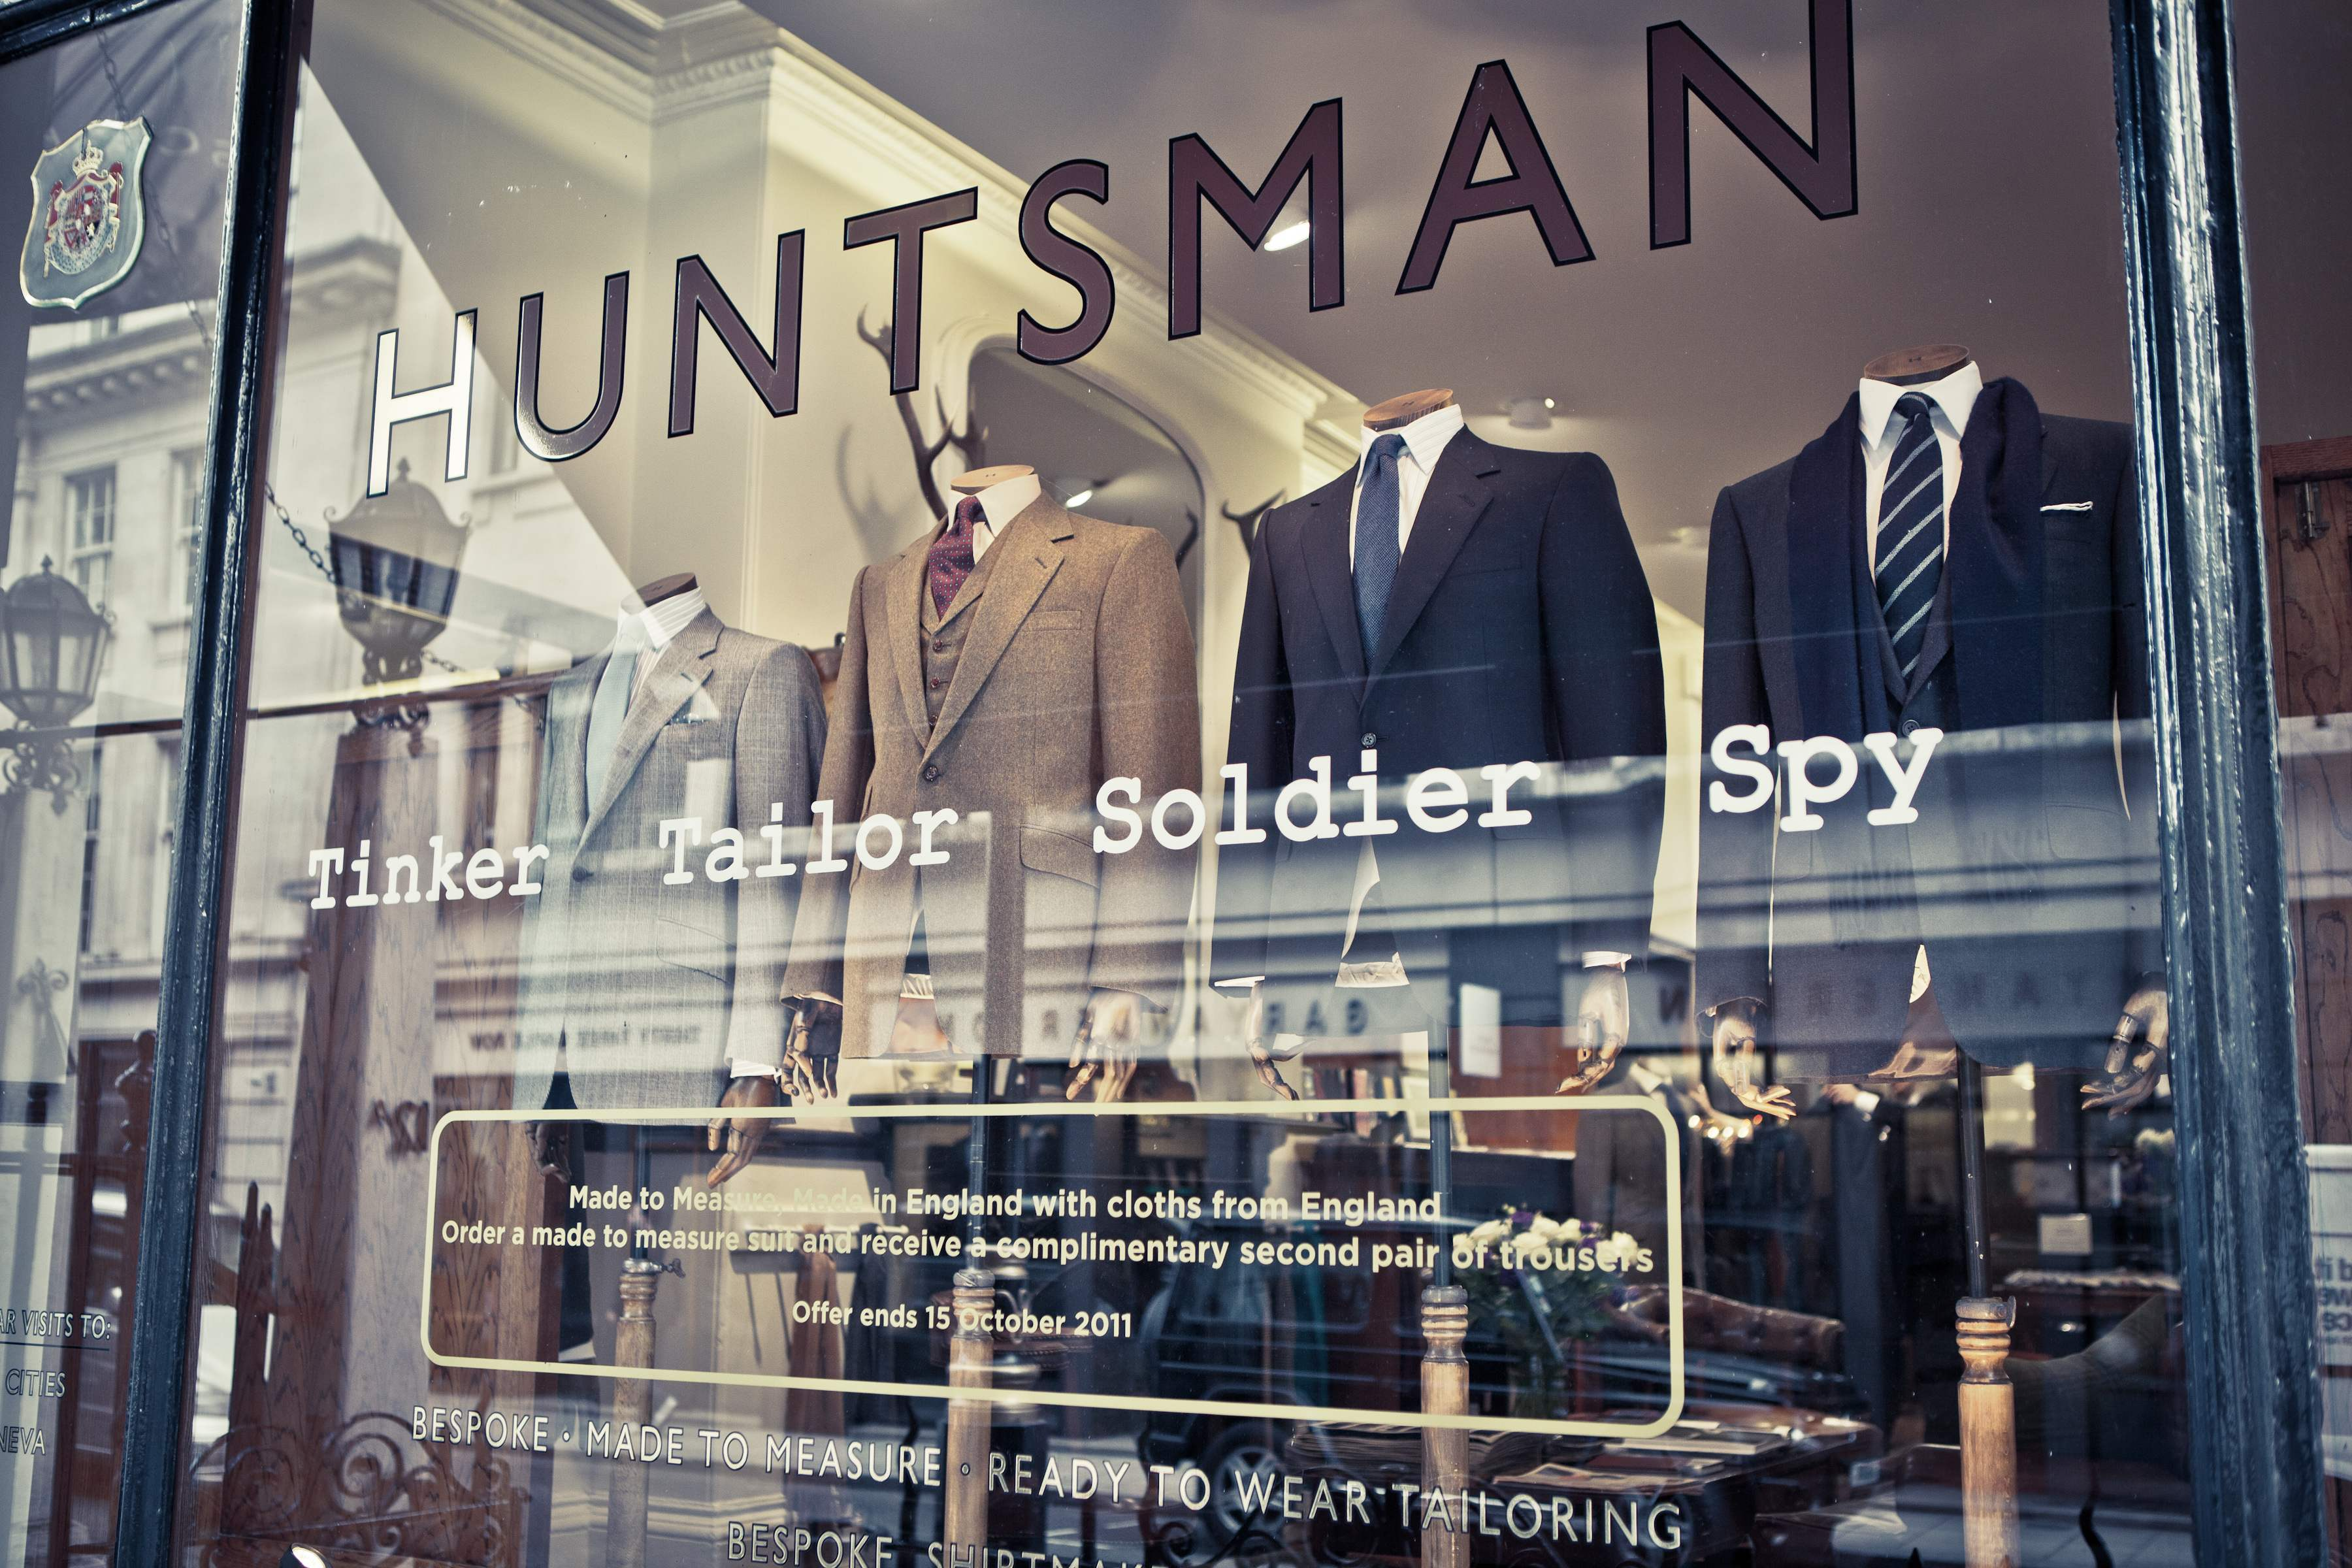 Huntsman & sons : on ne transige pas avec les traditions